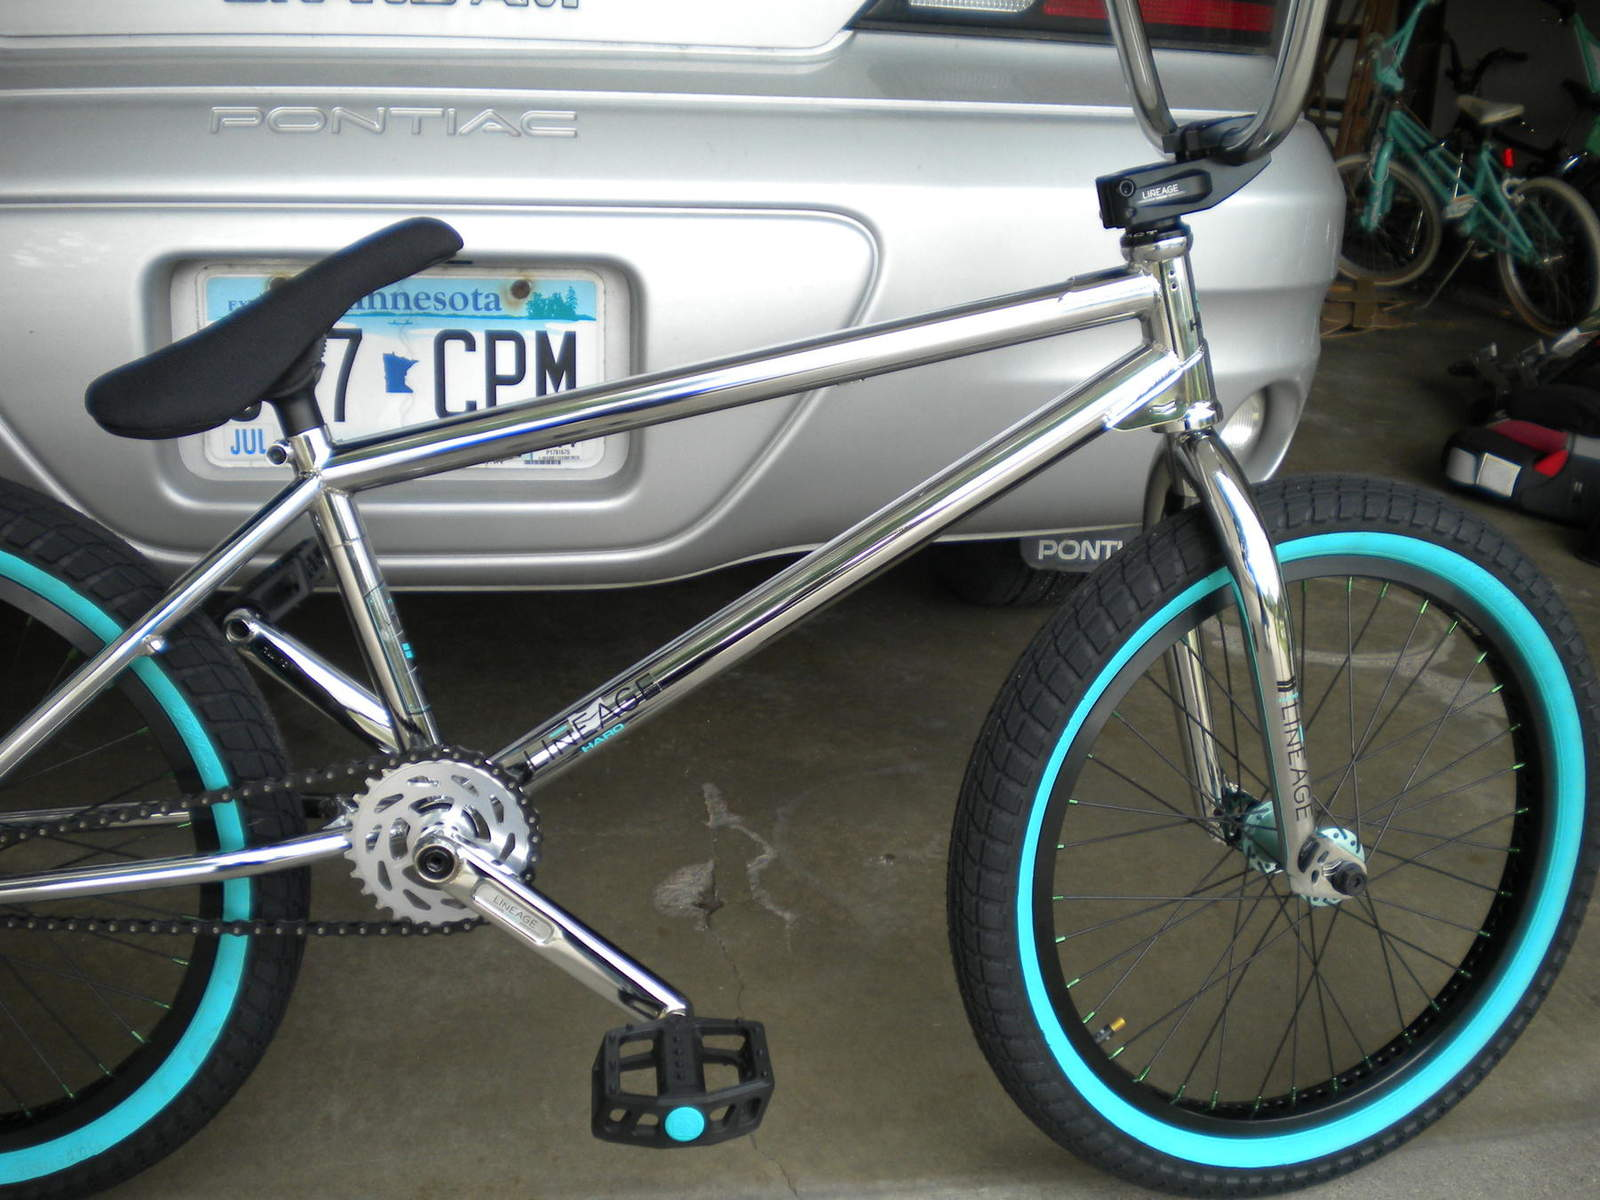 http://uploads.bmxmuseum.com/user-images/67863/dscn2004_blowup595d2a8ccf.jpg